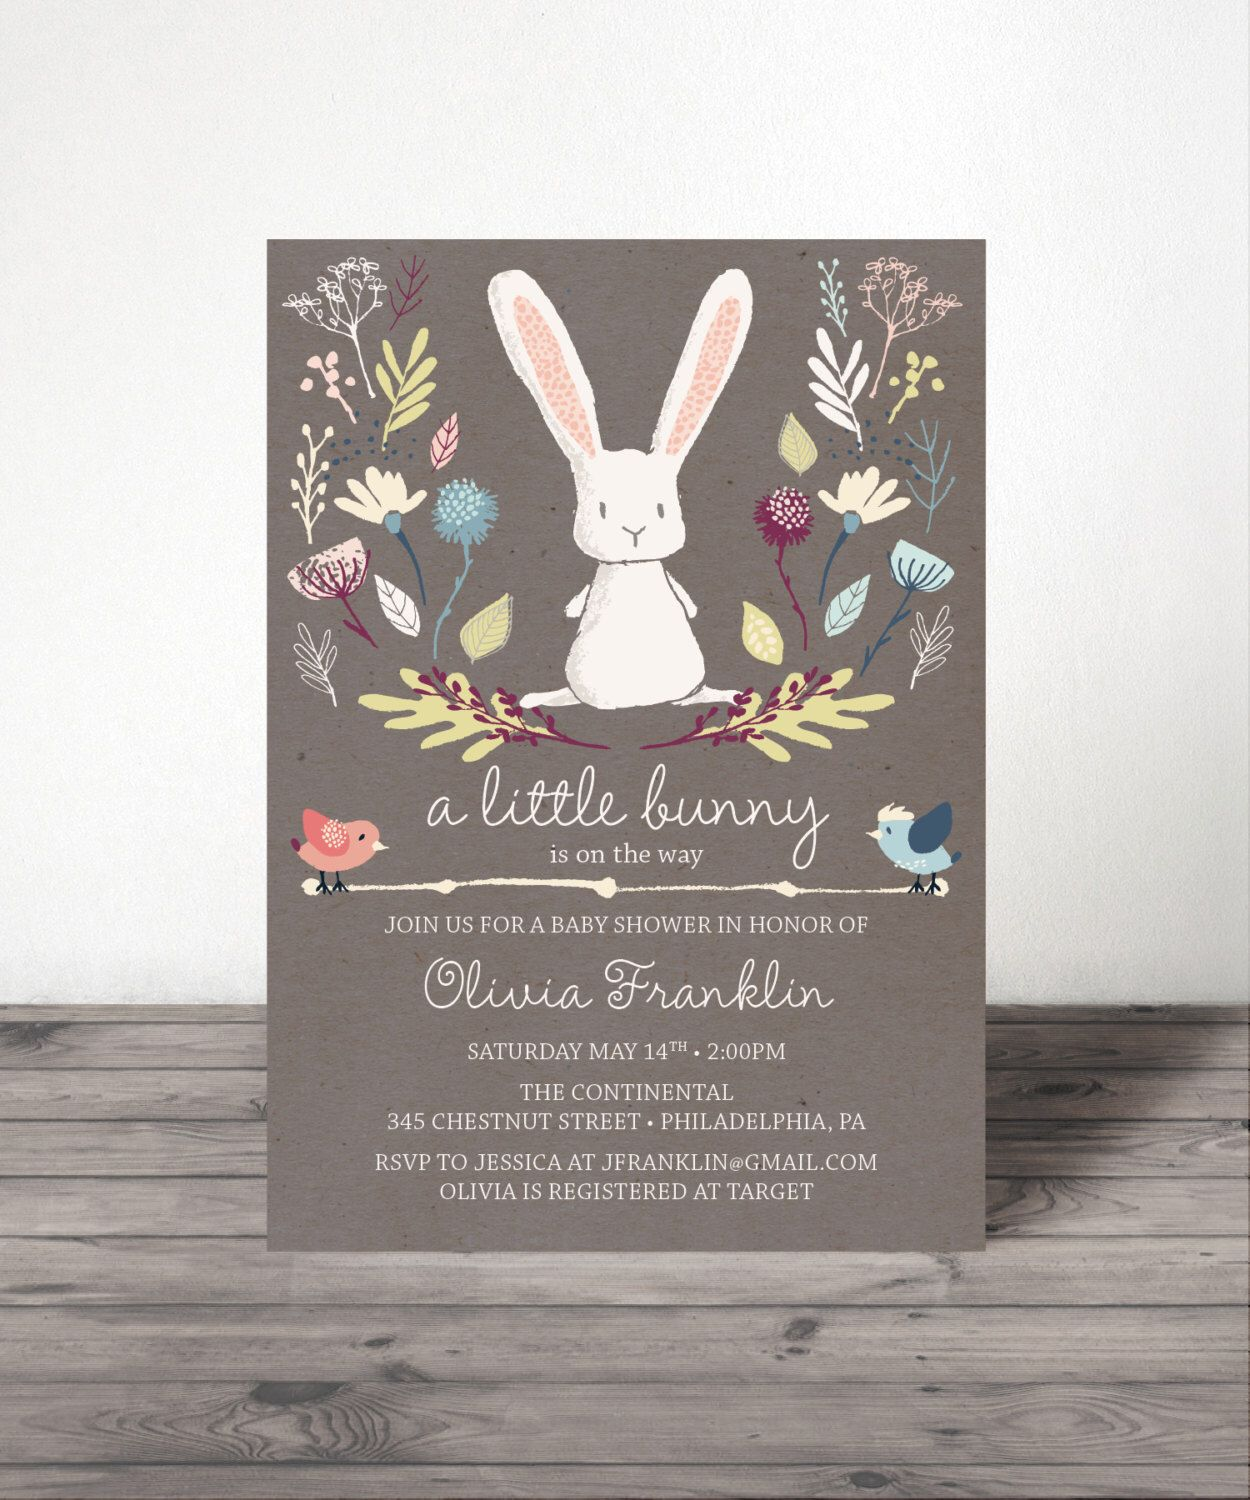 Bunny Baby Shower Invitation - Baby Shower Theme Ideas - Baby Shower ...